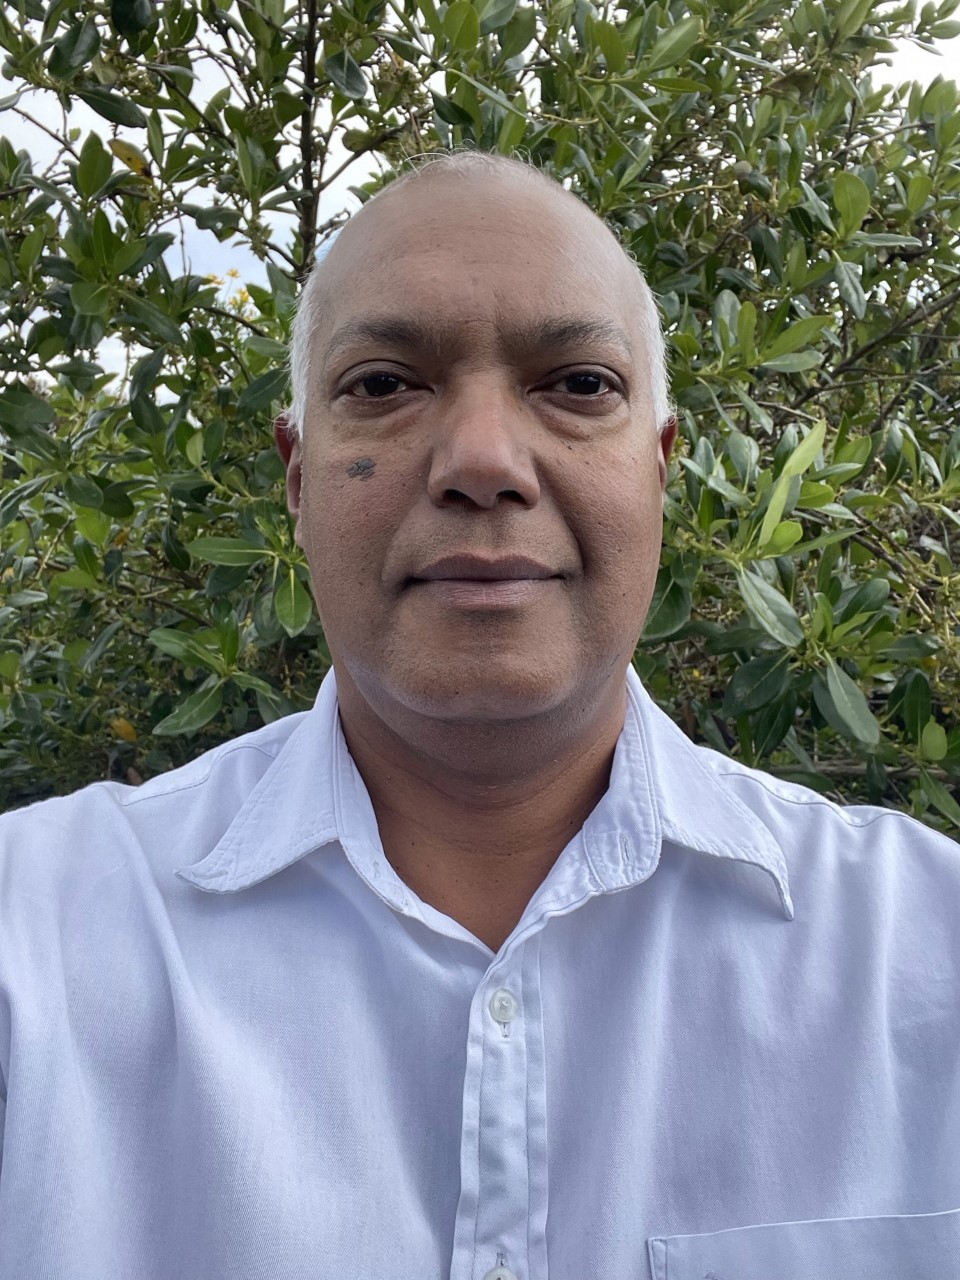 A man with dark skin, dark eyes and grey hair is standing in a garden. He is wearing a black white shirt. In the background are trees and blue sky with clouds.